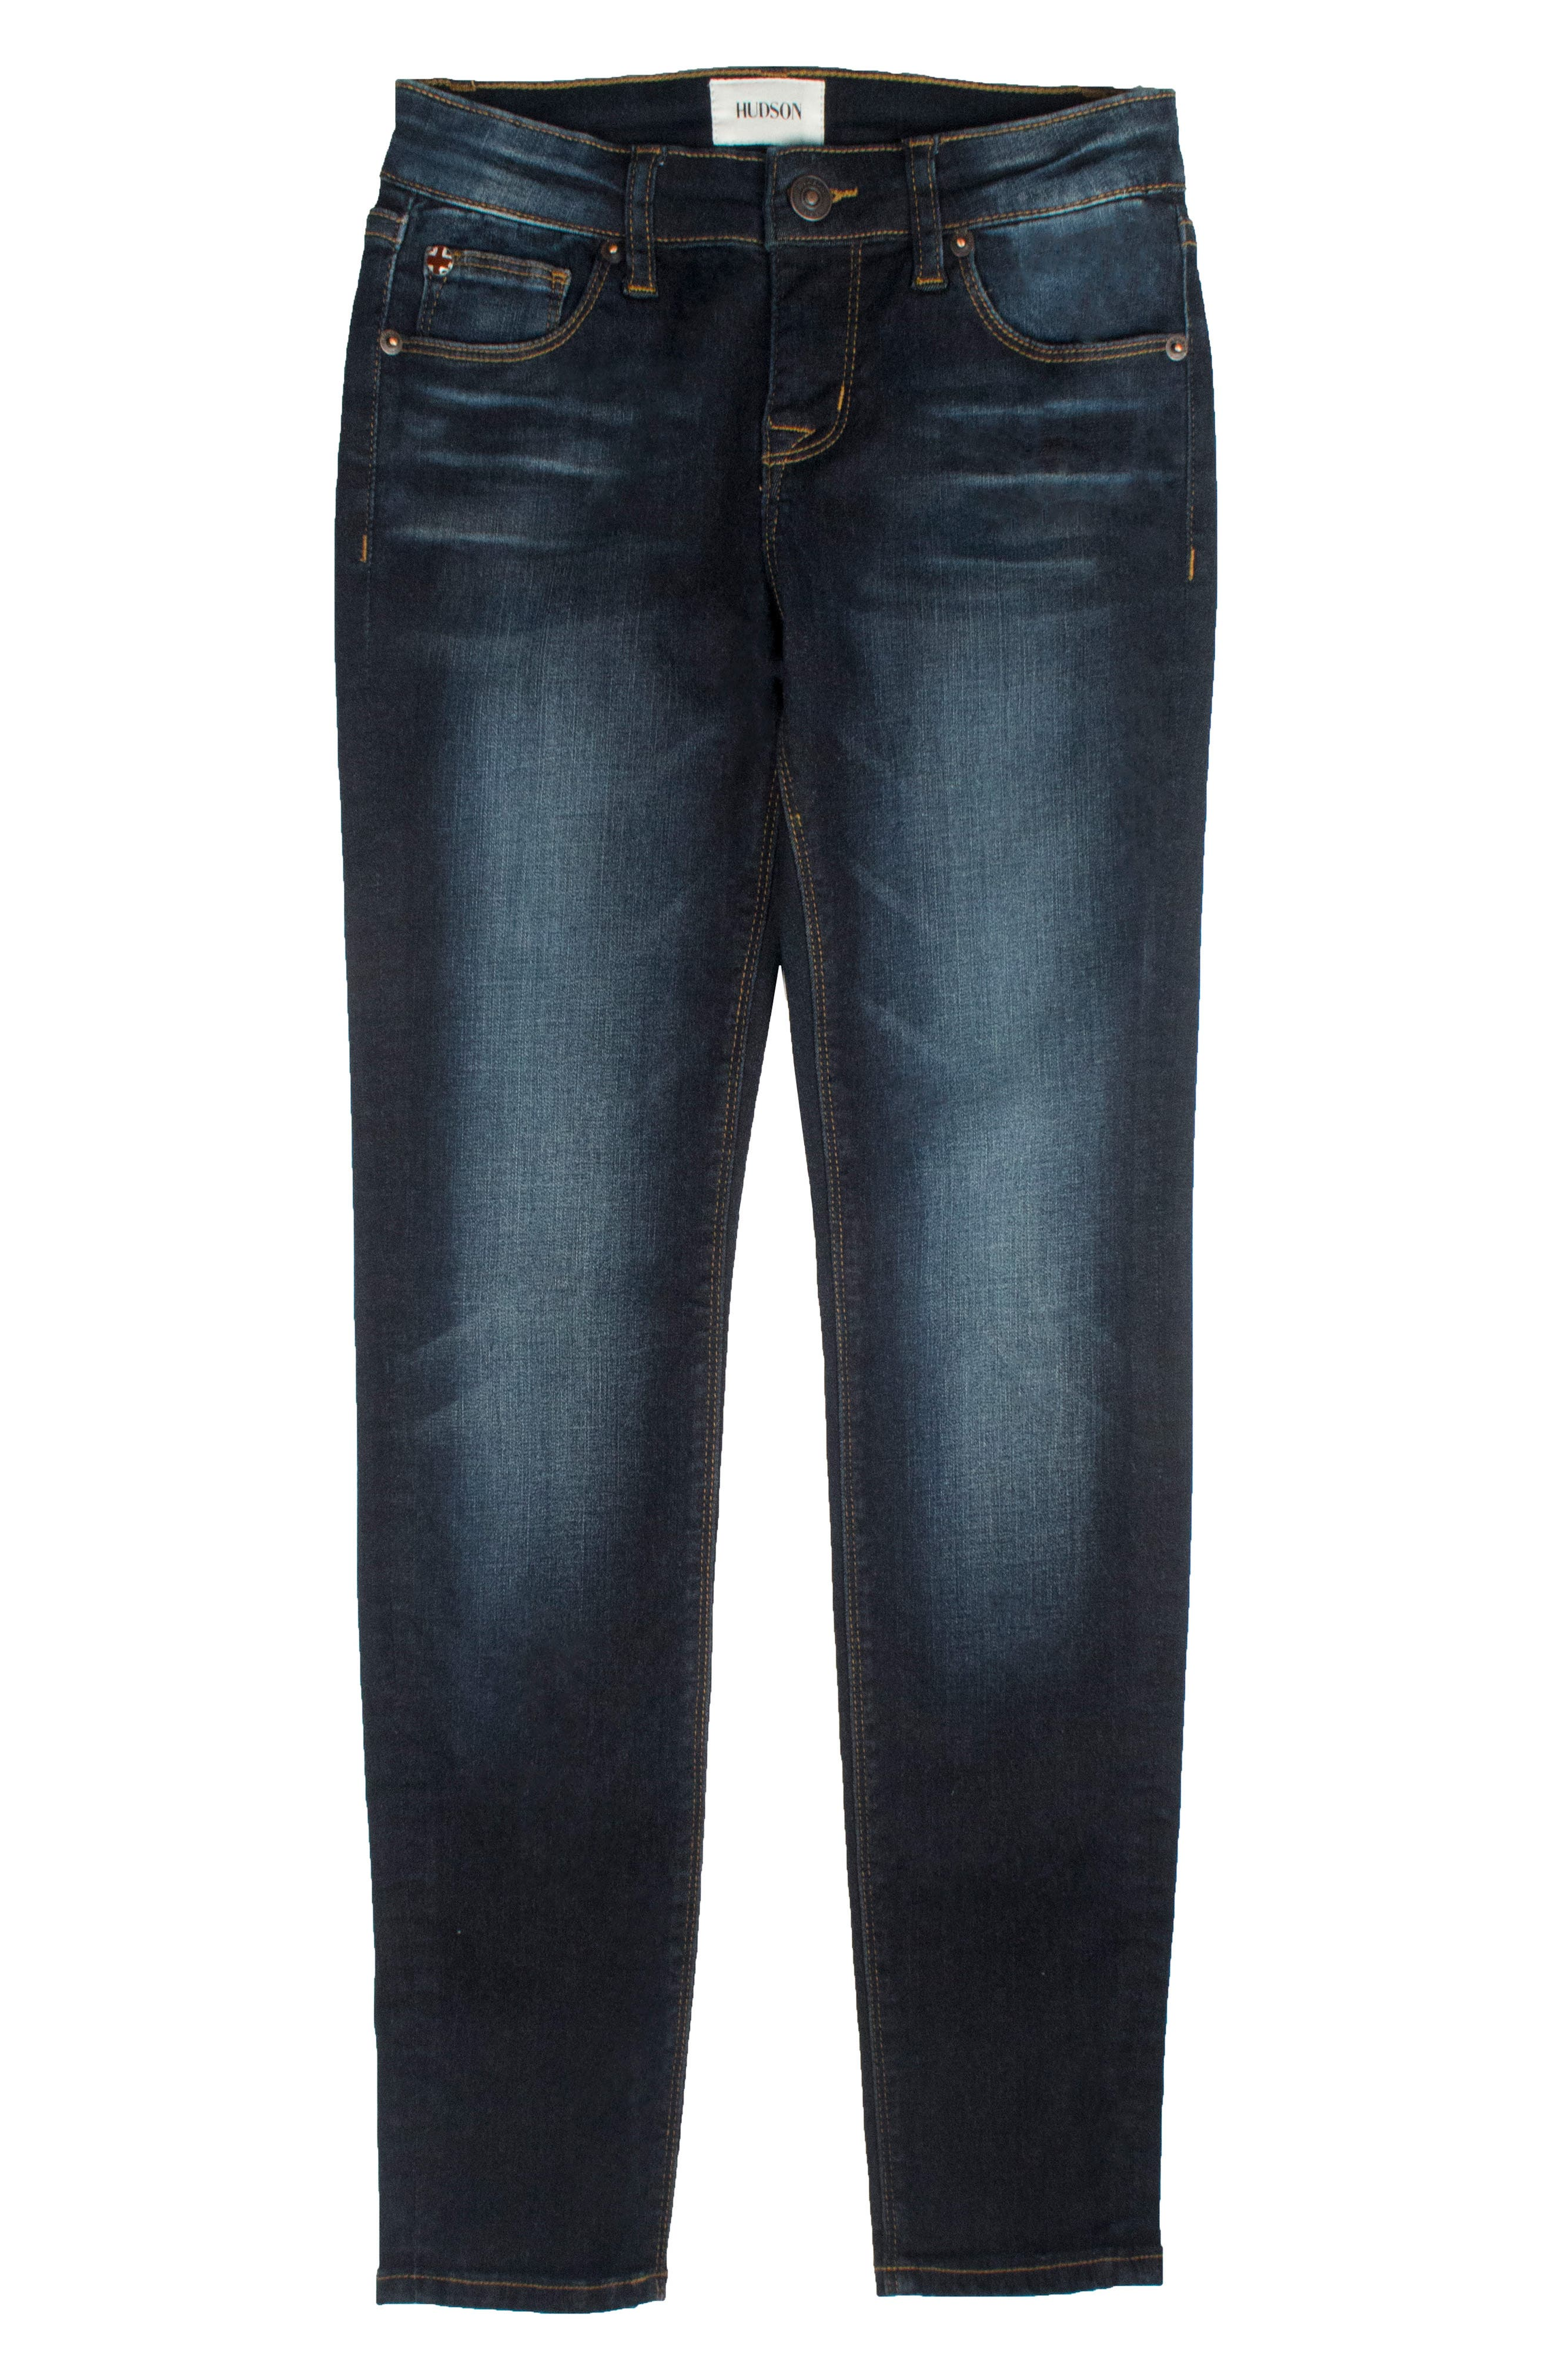 Christa Super Stretch Skinny Jeans,                         Main,                         color, Northern Light